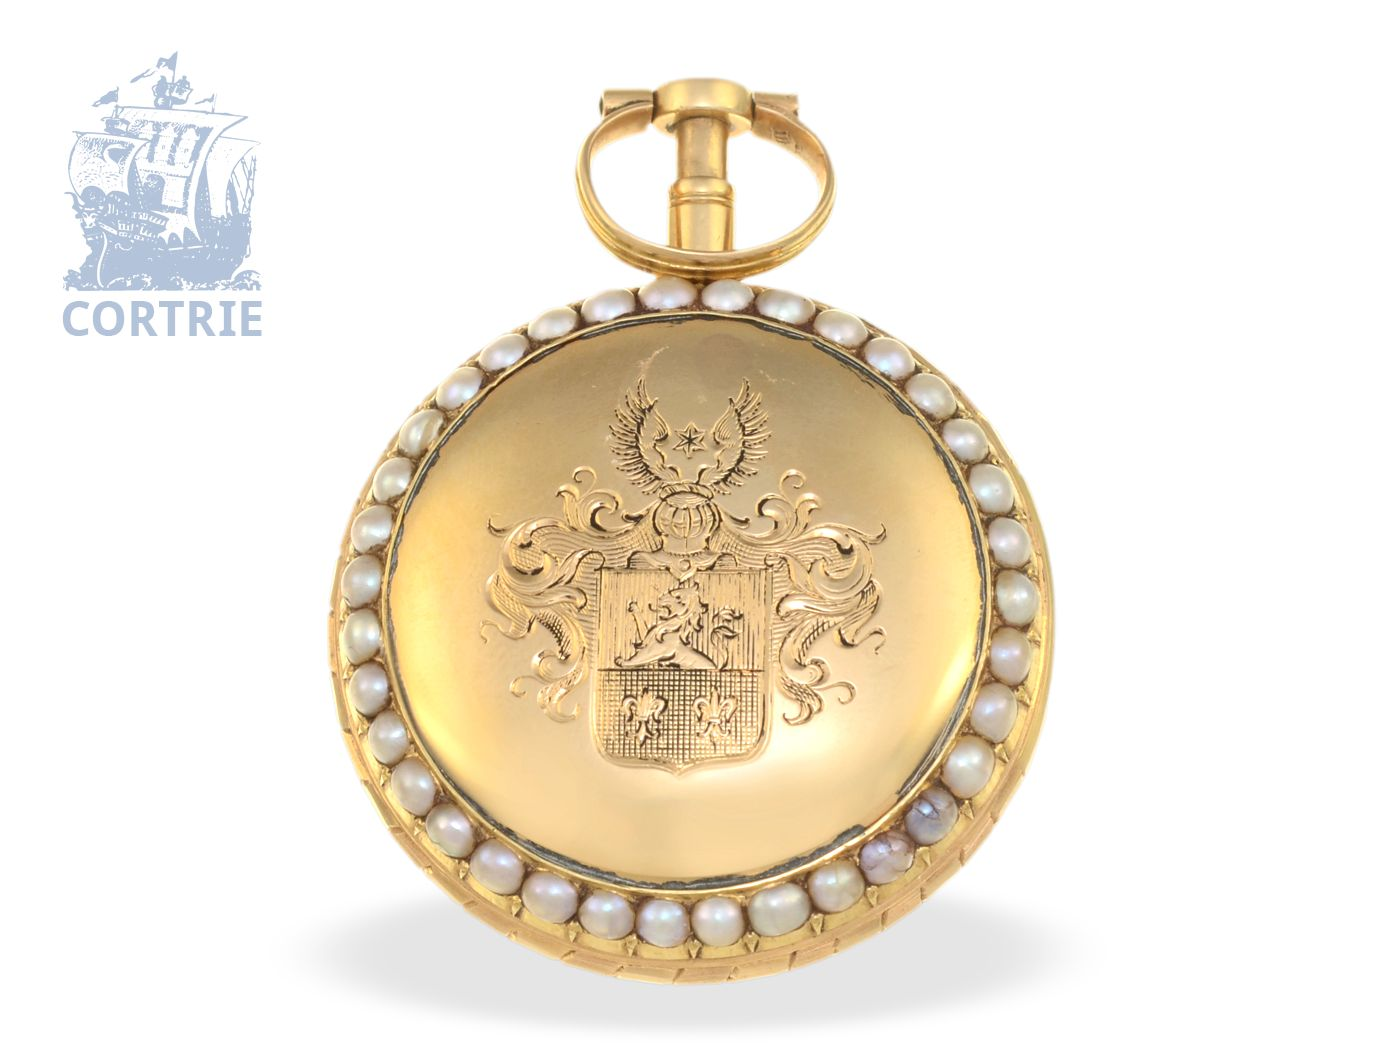 Pocket watch: very fine verge watch repeater with pearls on both sides, bell, formerly nobleman's possession, Berthoud Paris no.128, ca.1770-